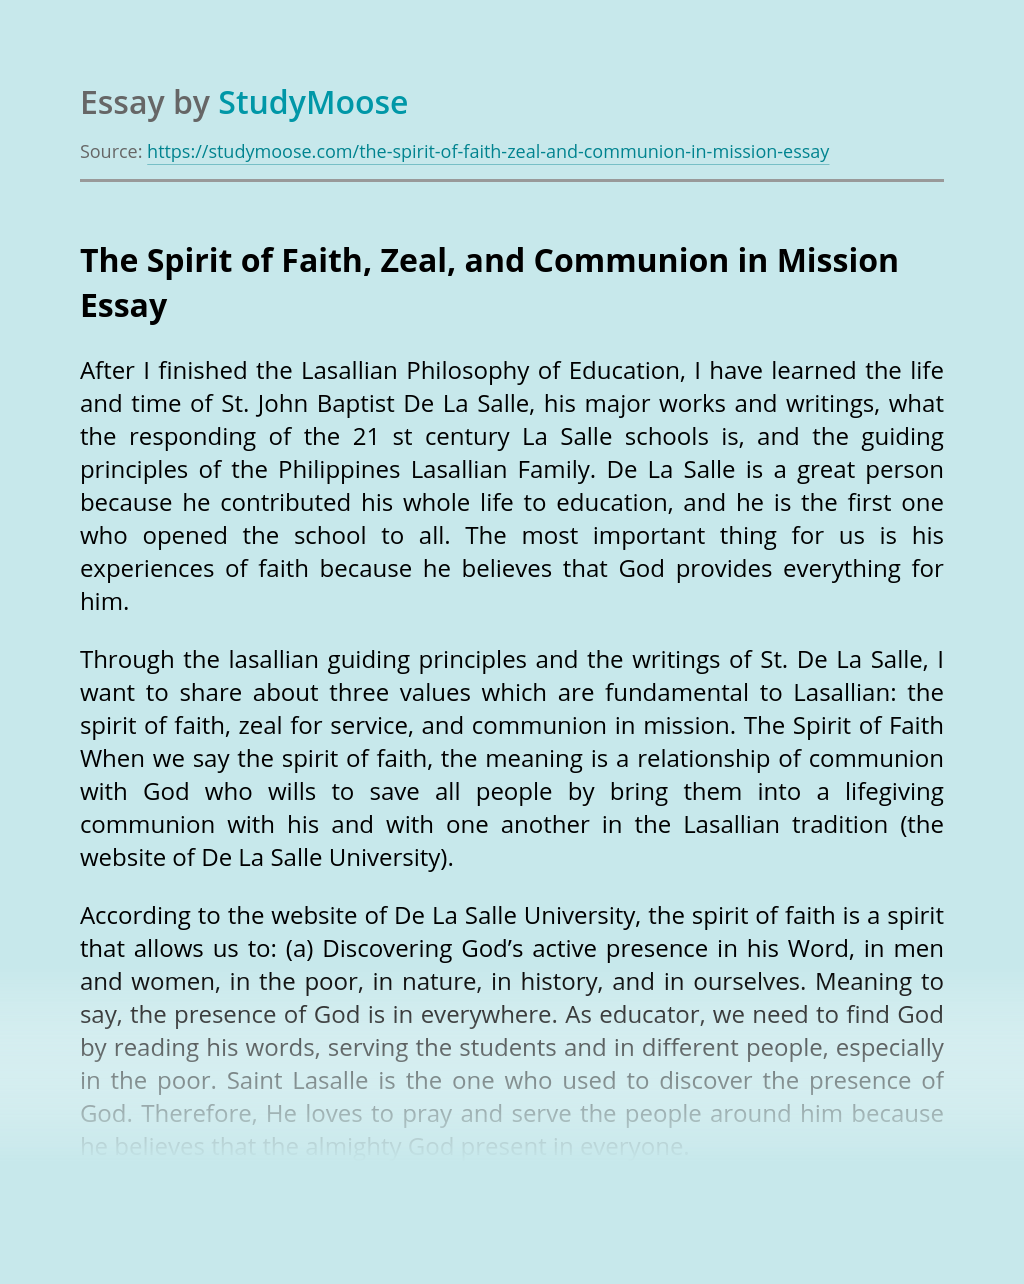 The Spirit of Faith, Zeal, and Communion in Mission